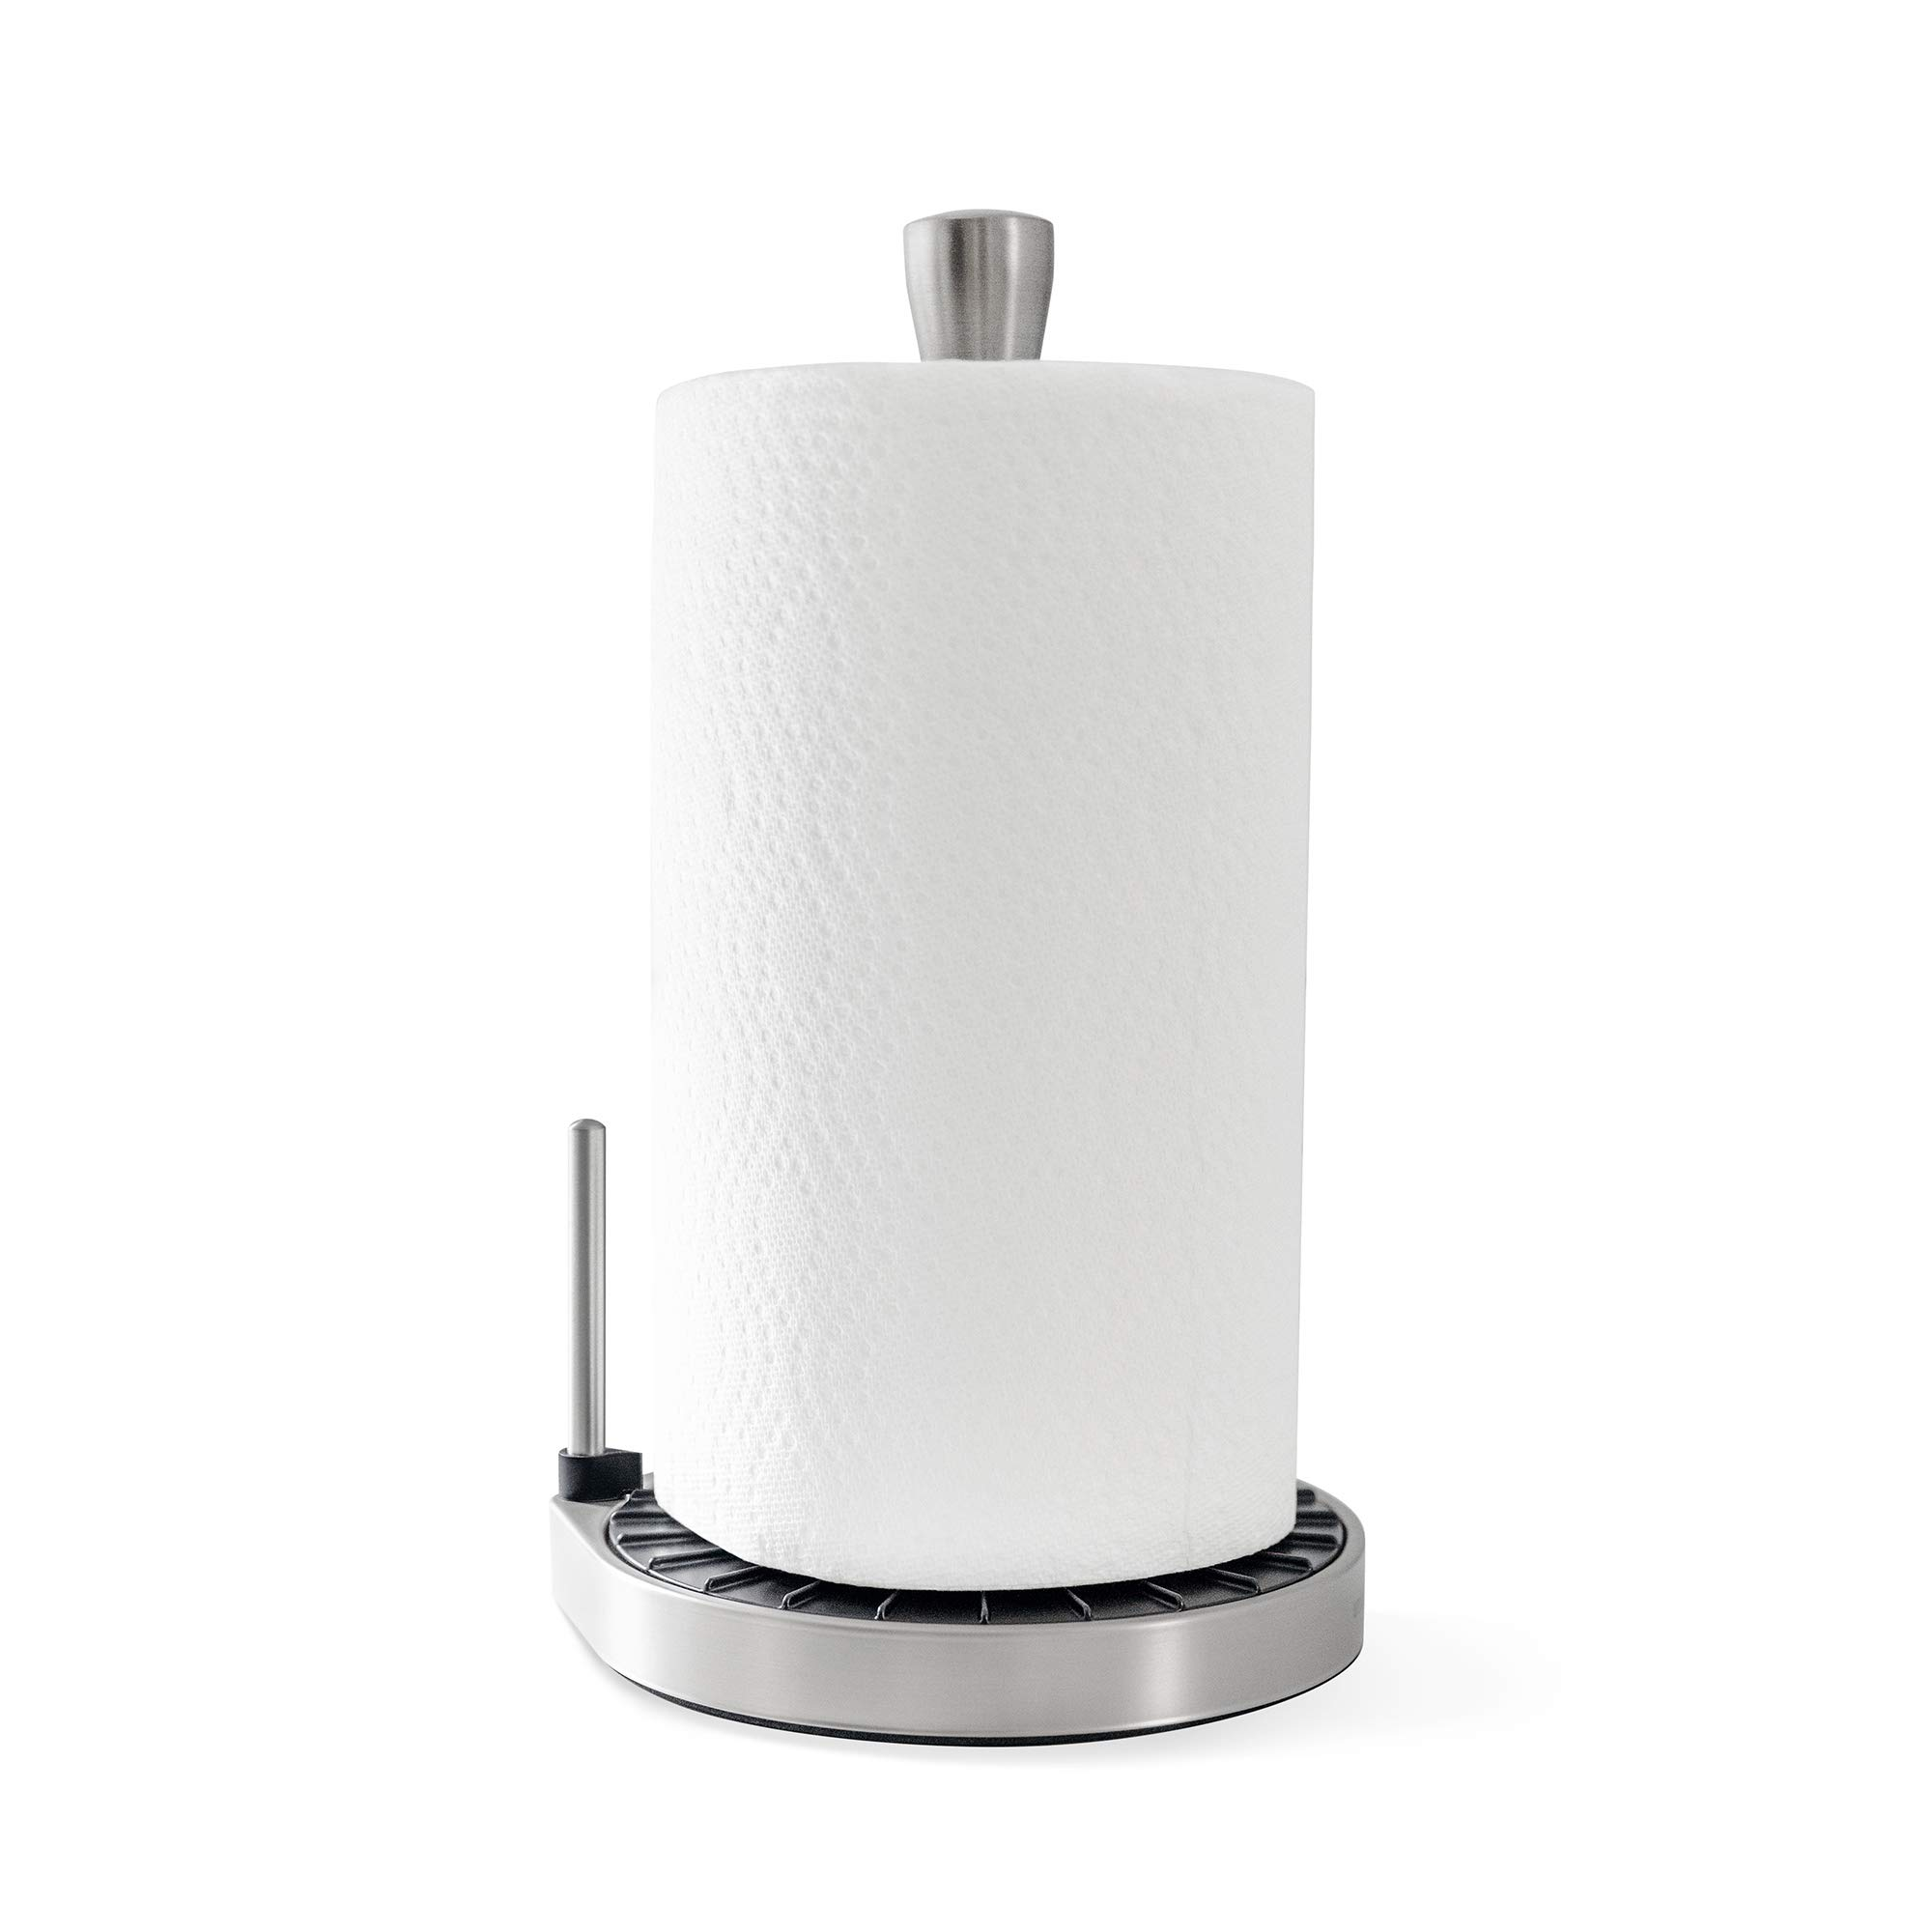 Umbra Spin Click N Tear Paper Towel Holder Stand for Countertop - One-Handed Tear, Nickel/Black